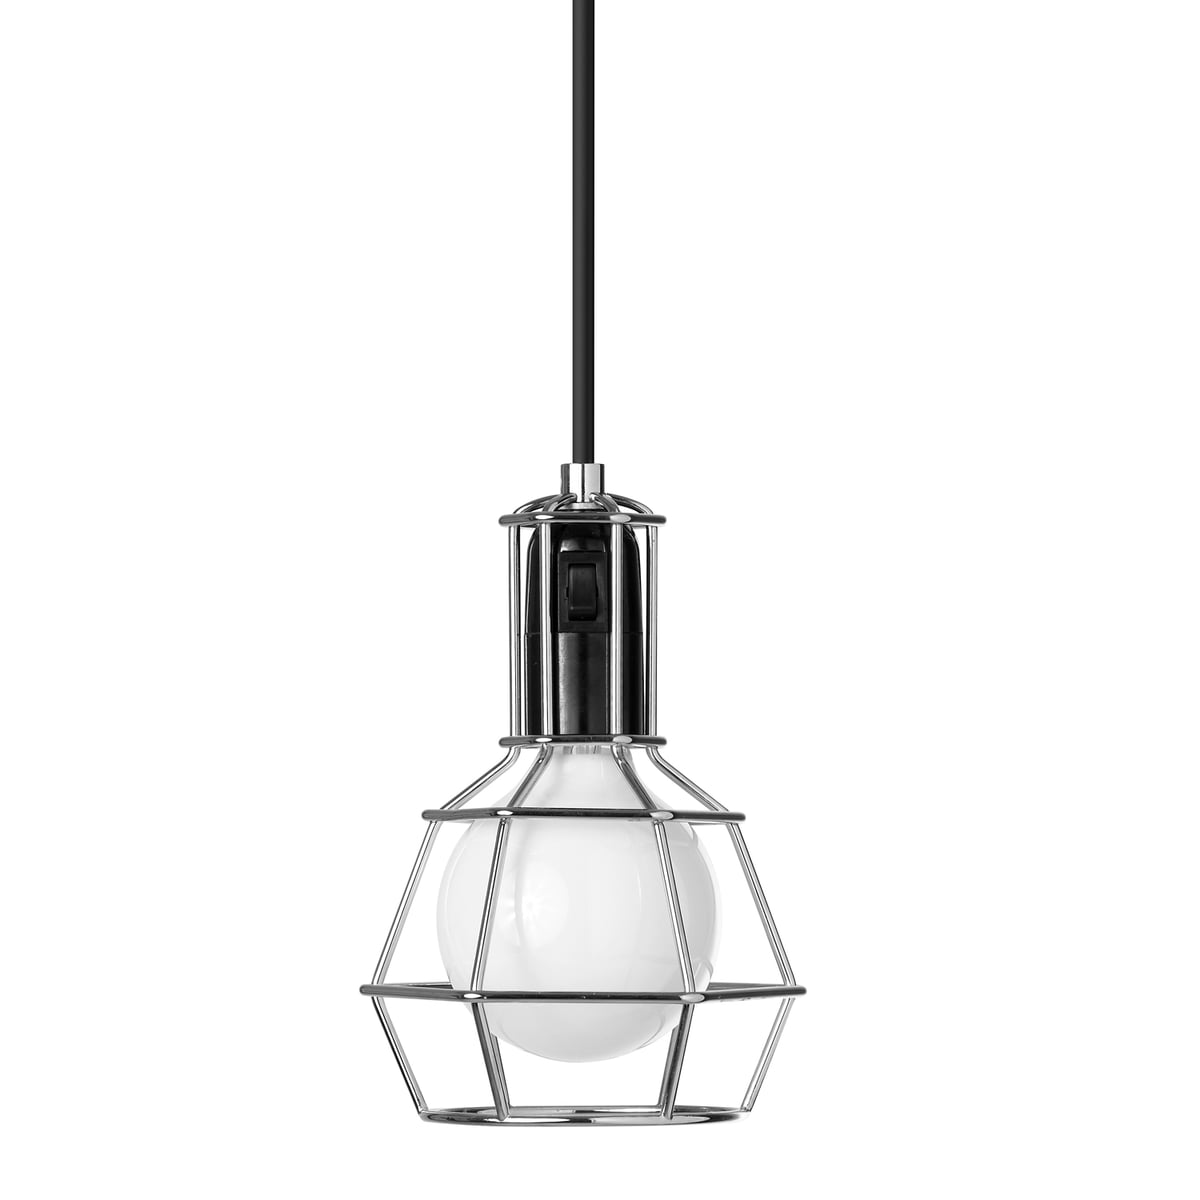 Design House Stockholm Work Lamp (Limited Edition), grau